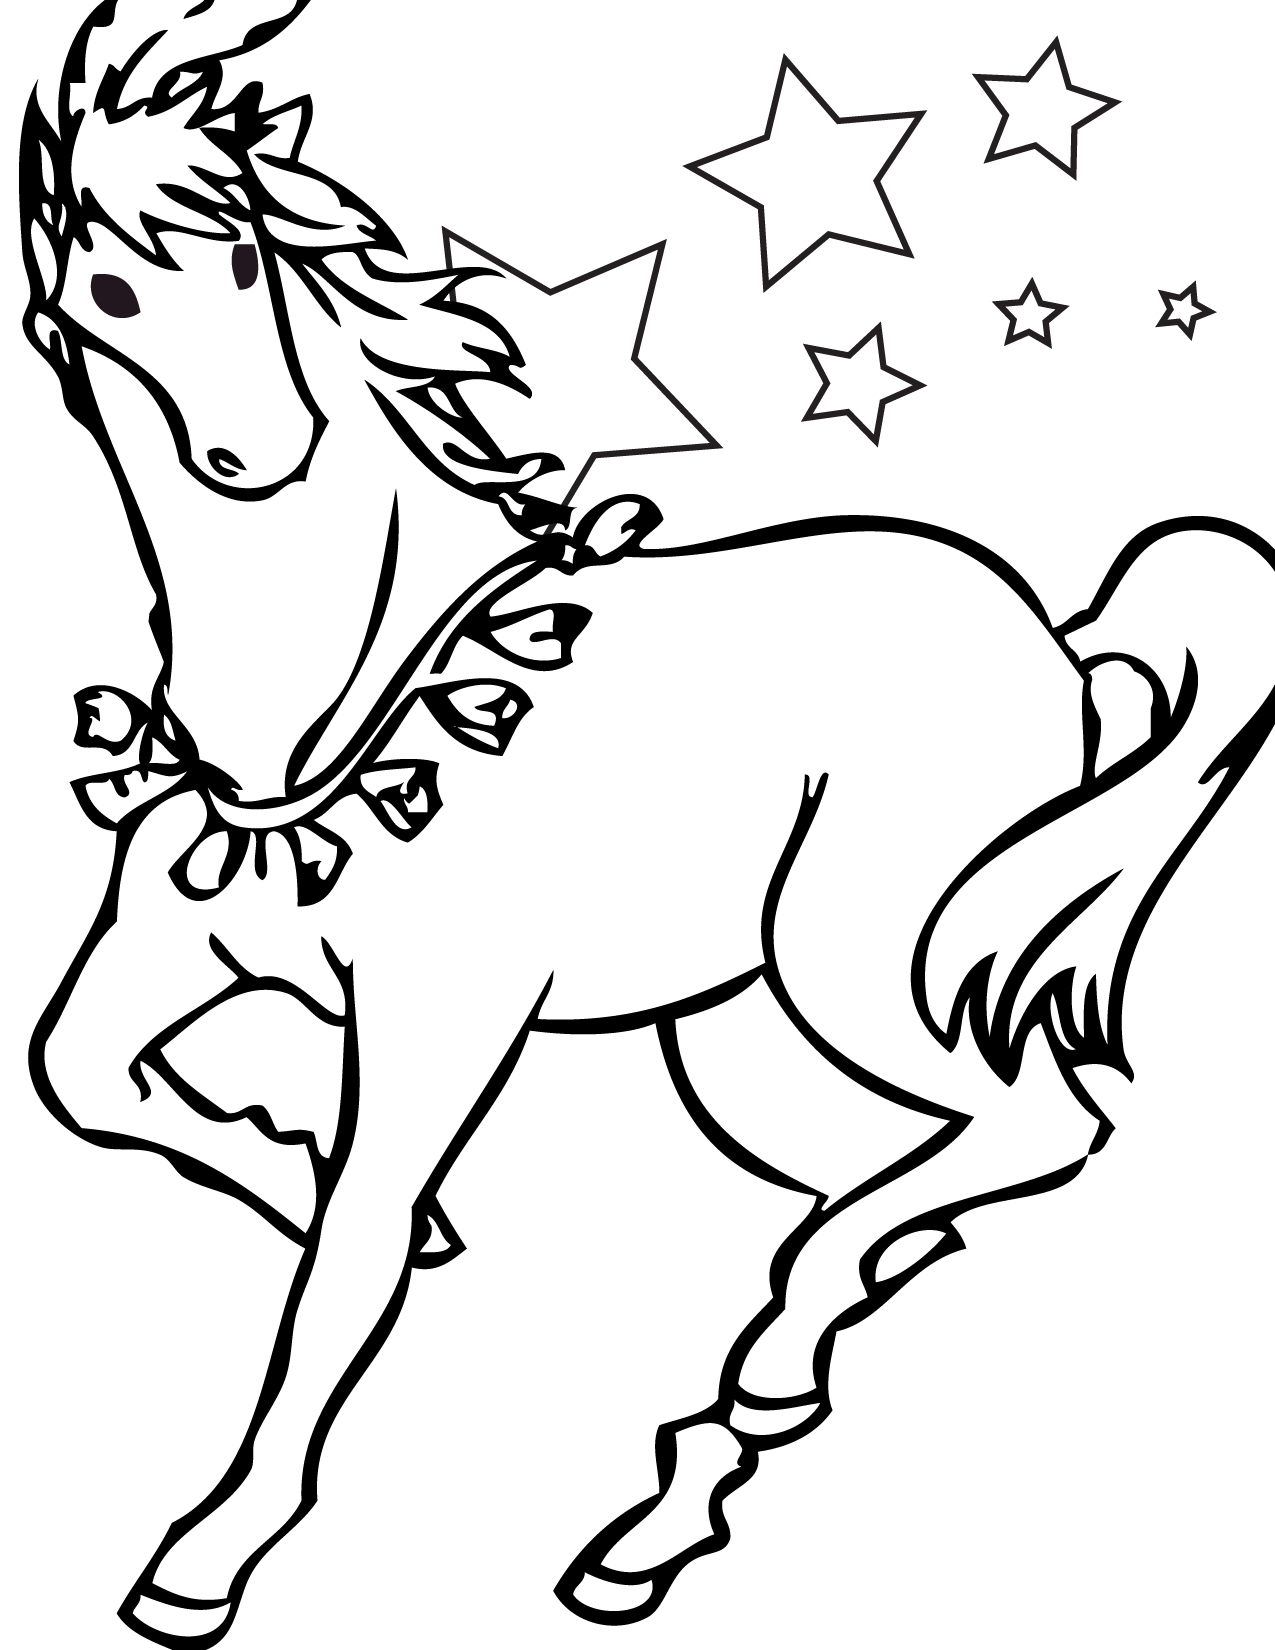 free coloring pages of horses - Free Coloring Book Pictures